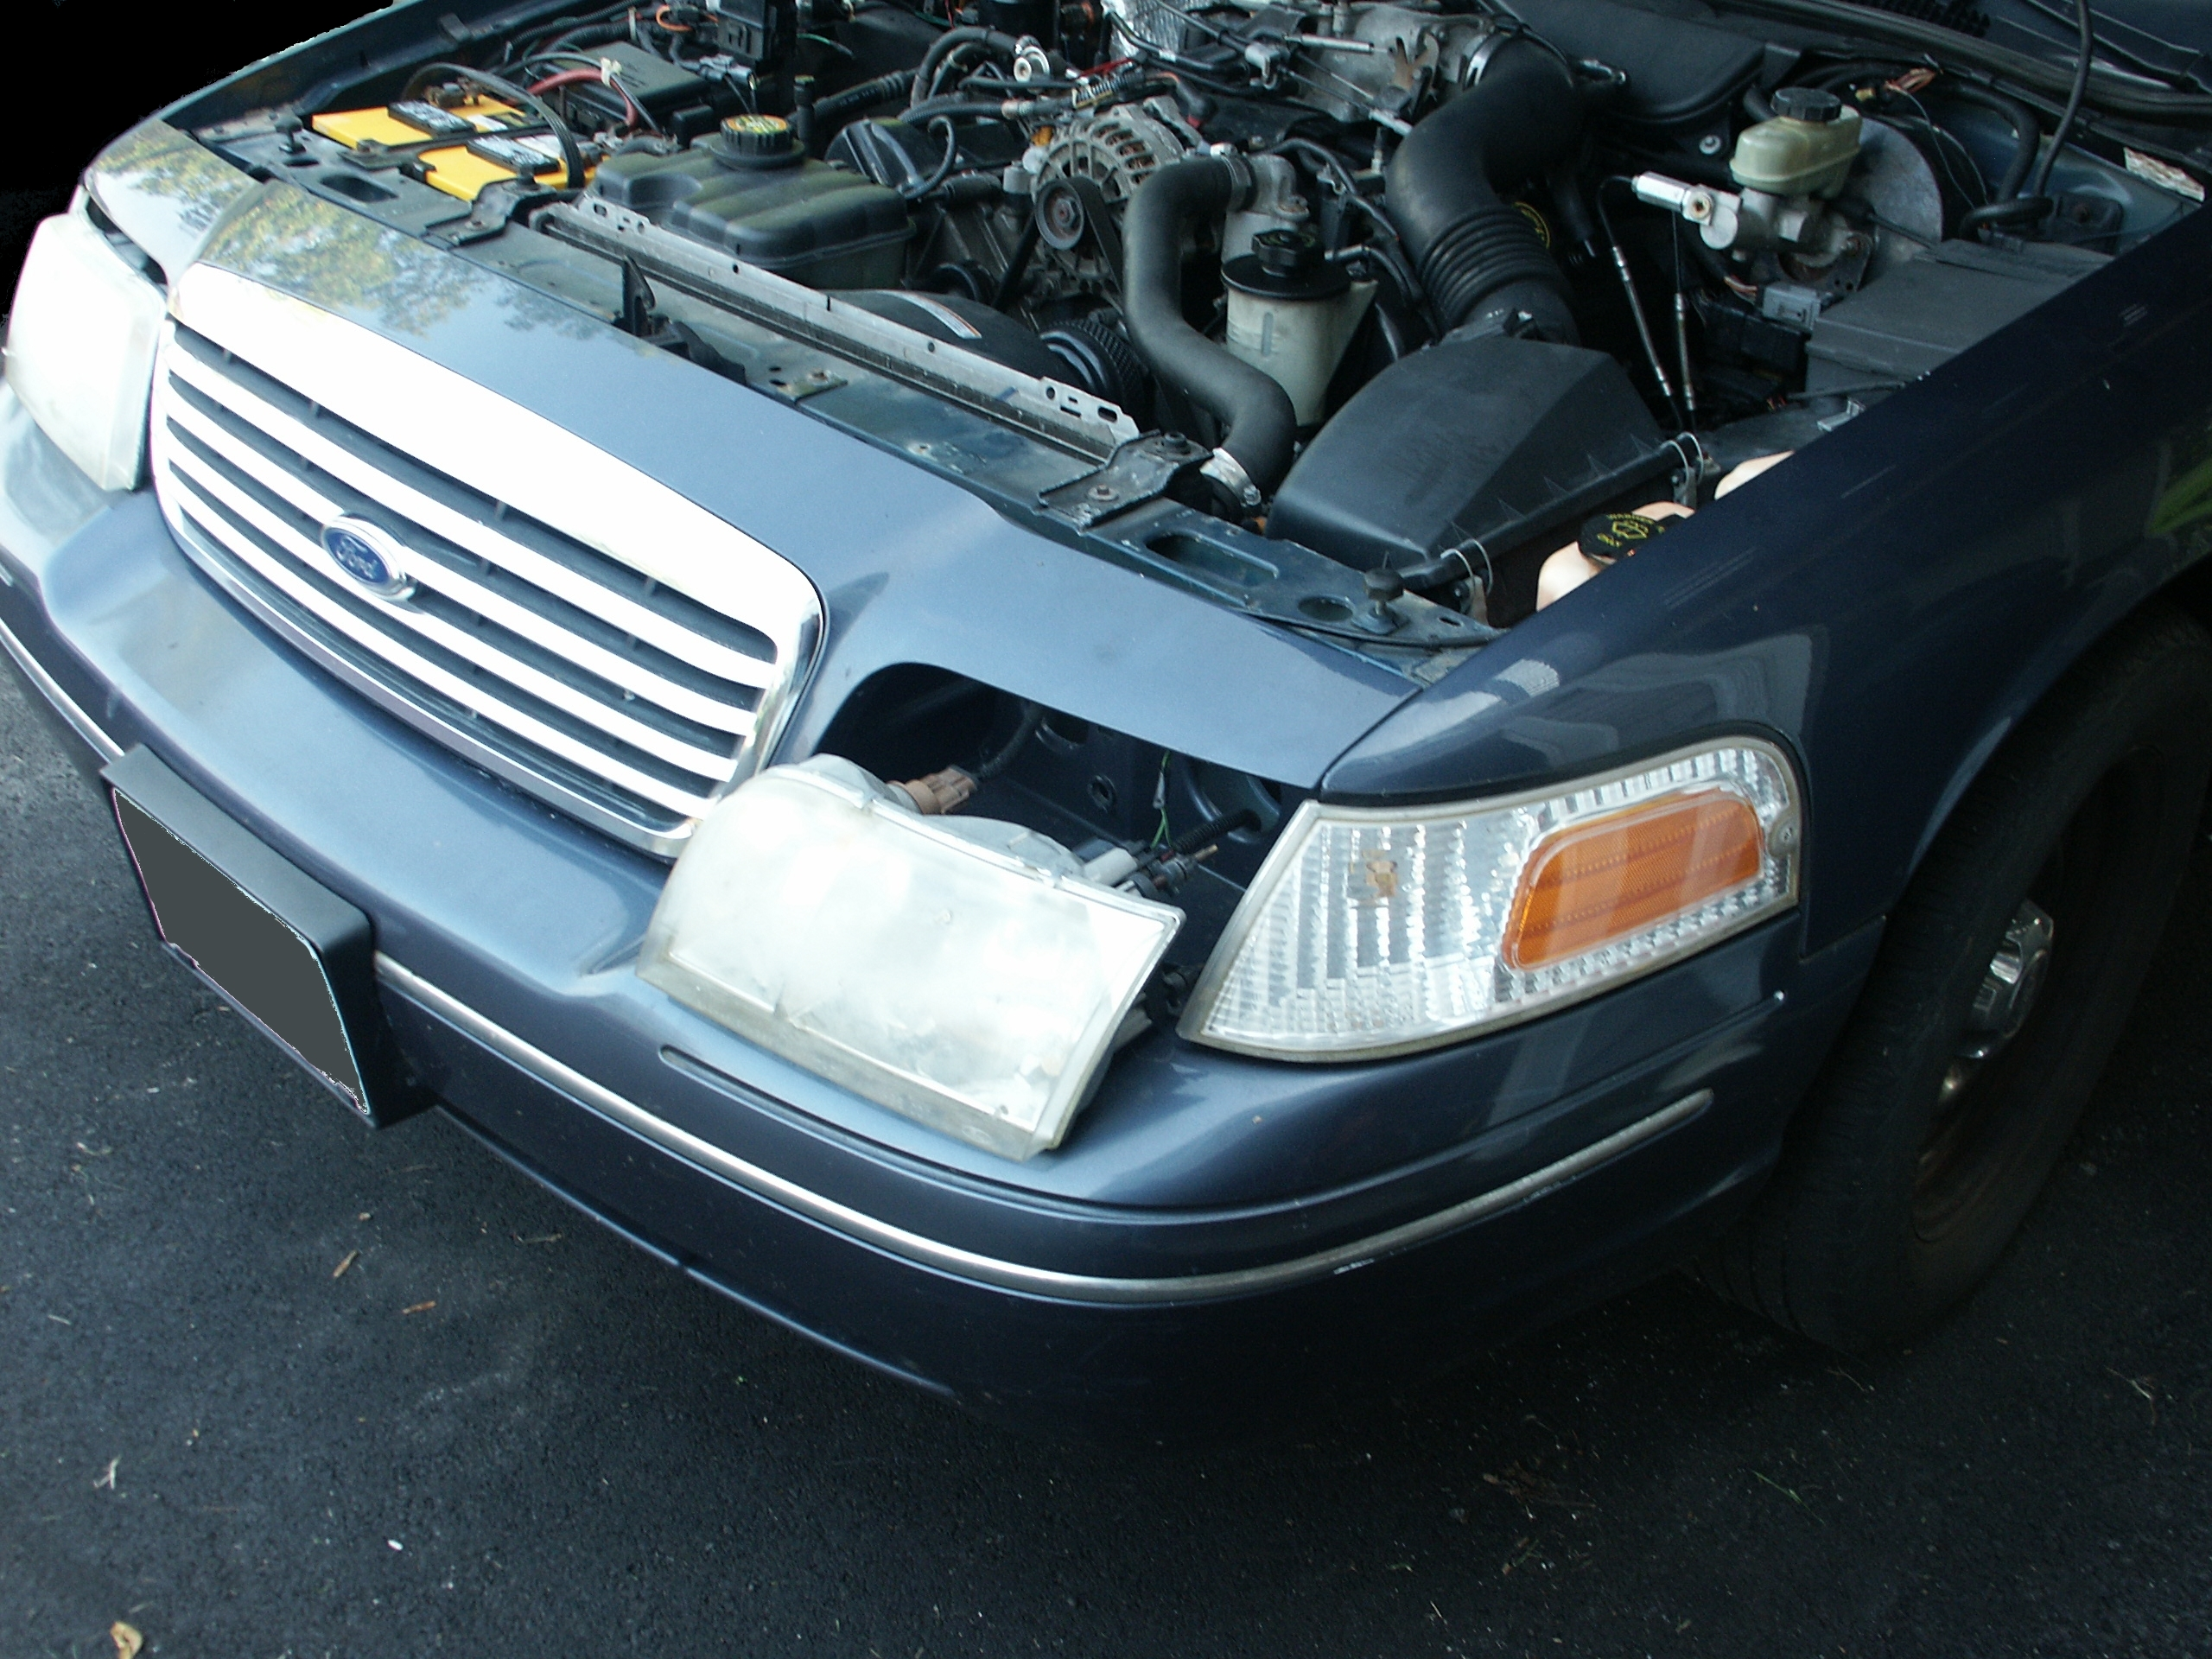 The headlights slide forward easily once the retainers have been removed